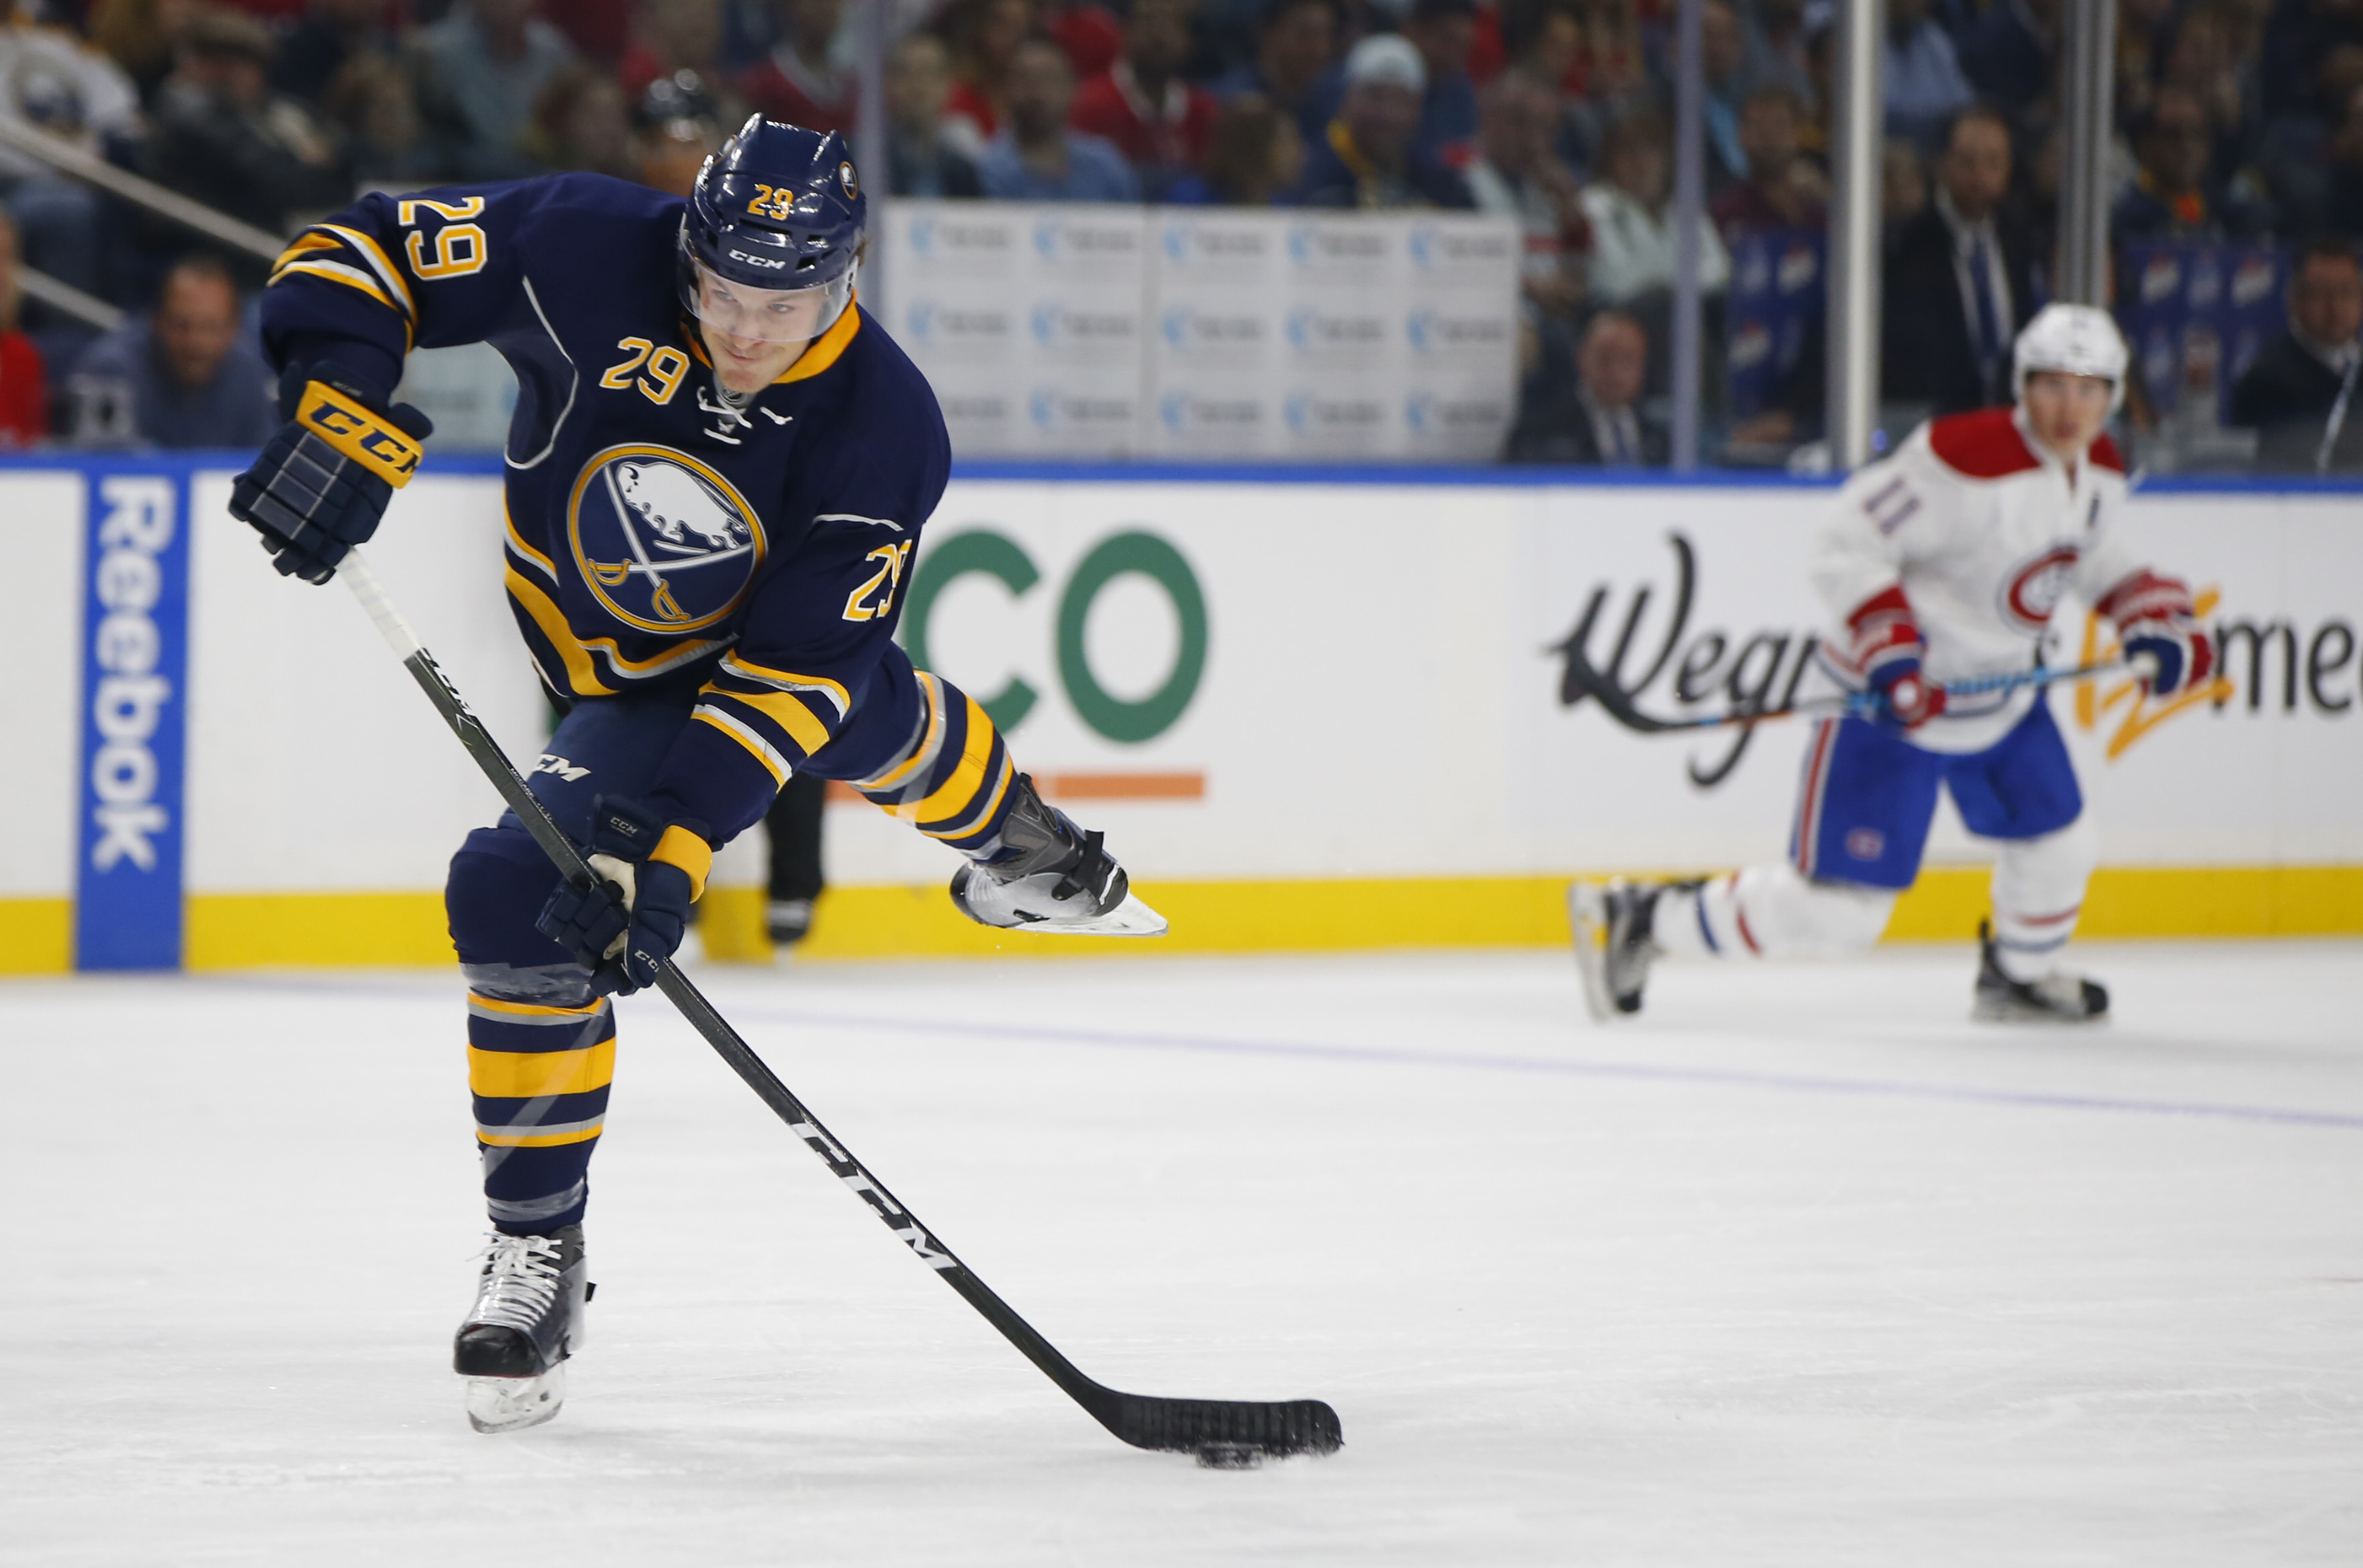 Buffalo Sabres Jake McCabe shoots against the Montreal Canadiens during first period action at the KeyBank Center. (Harry Scull Jr./Buffalo News)